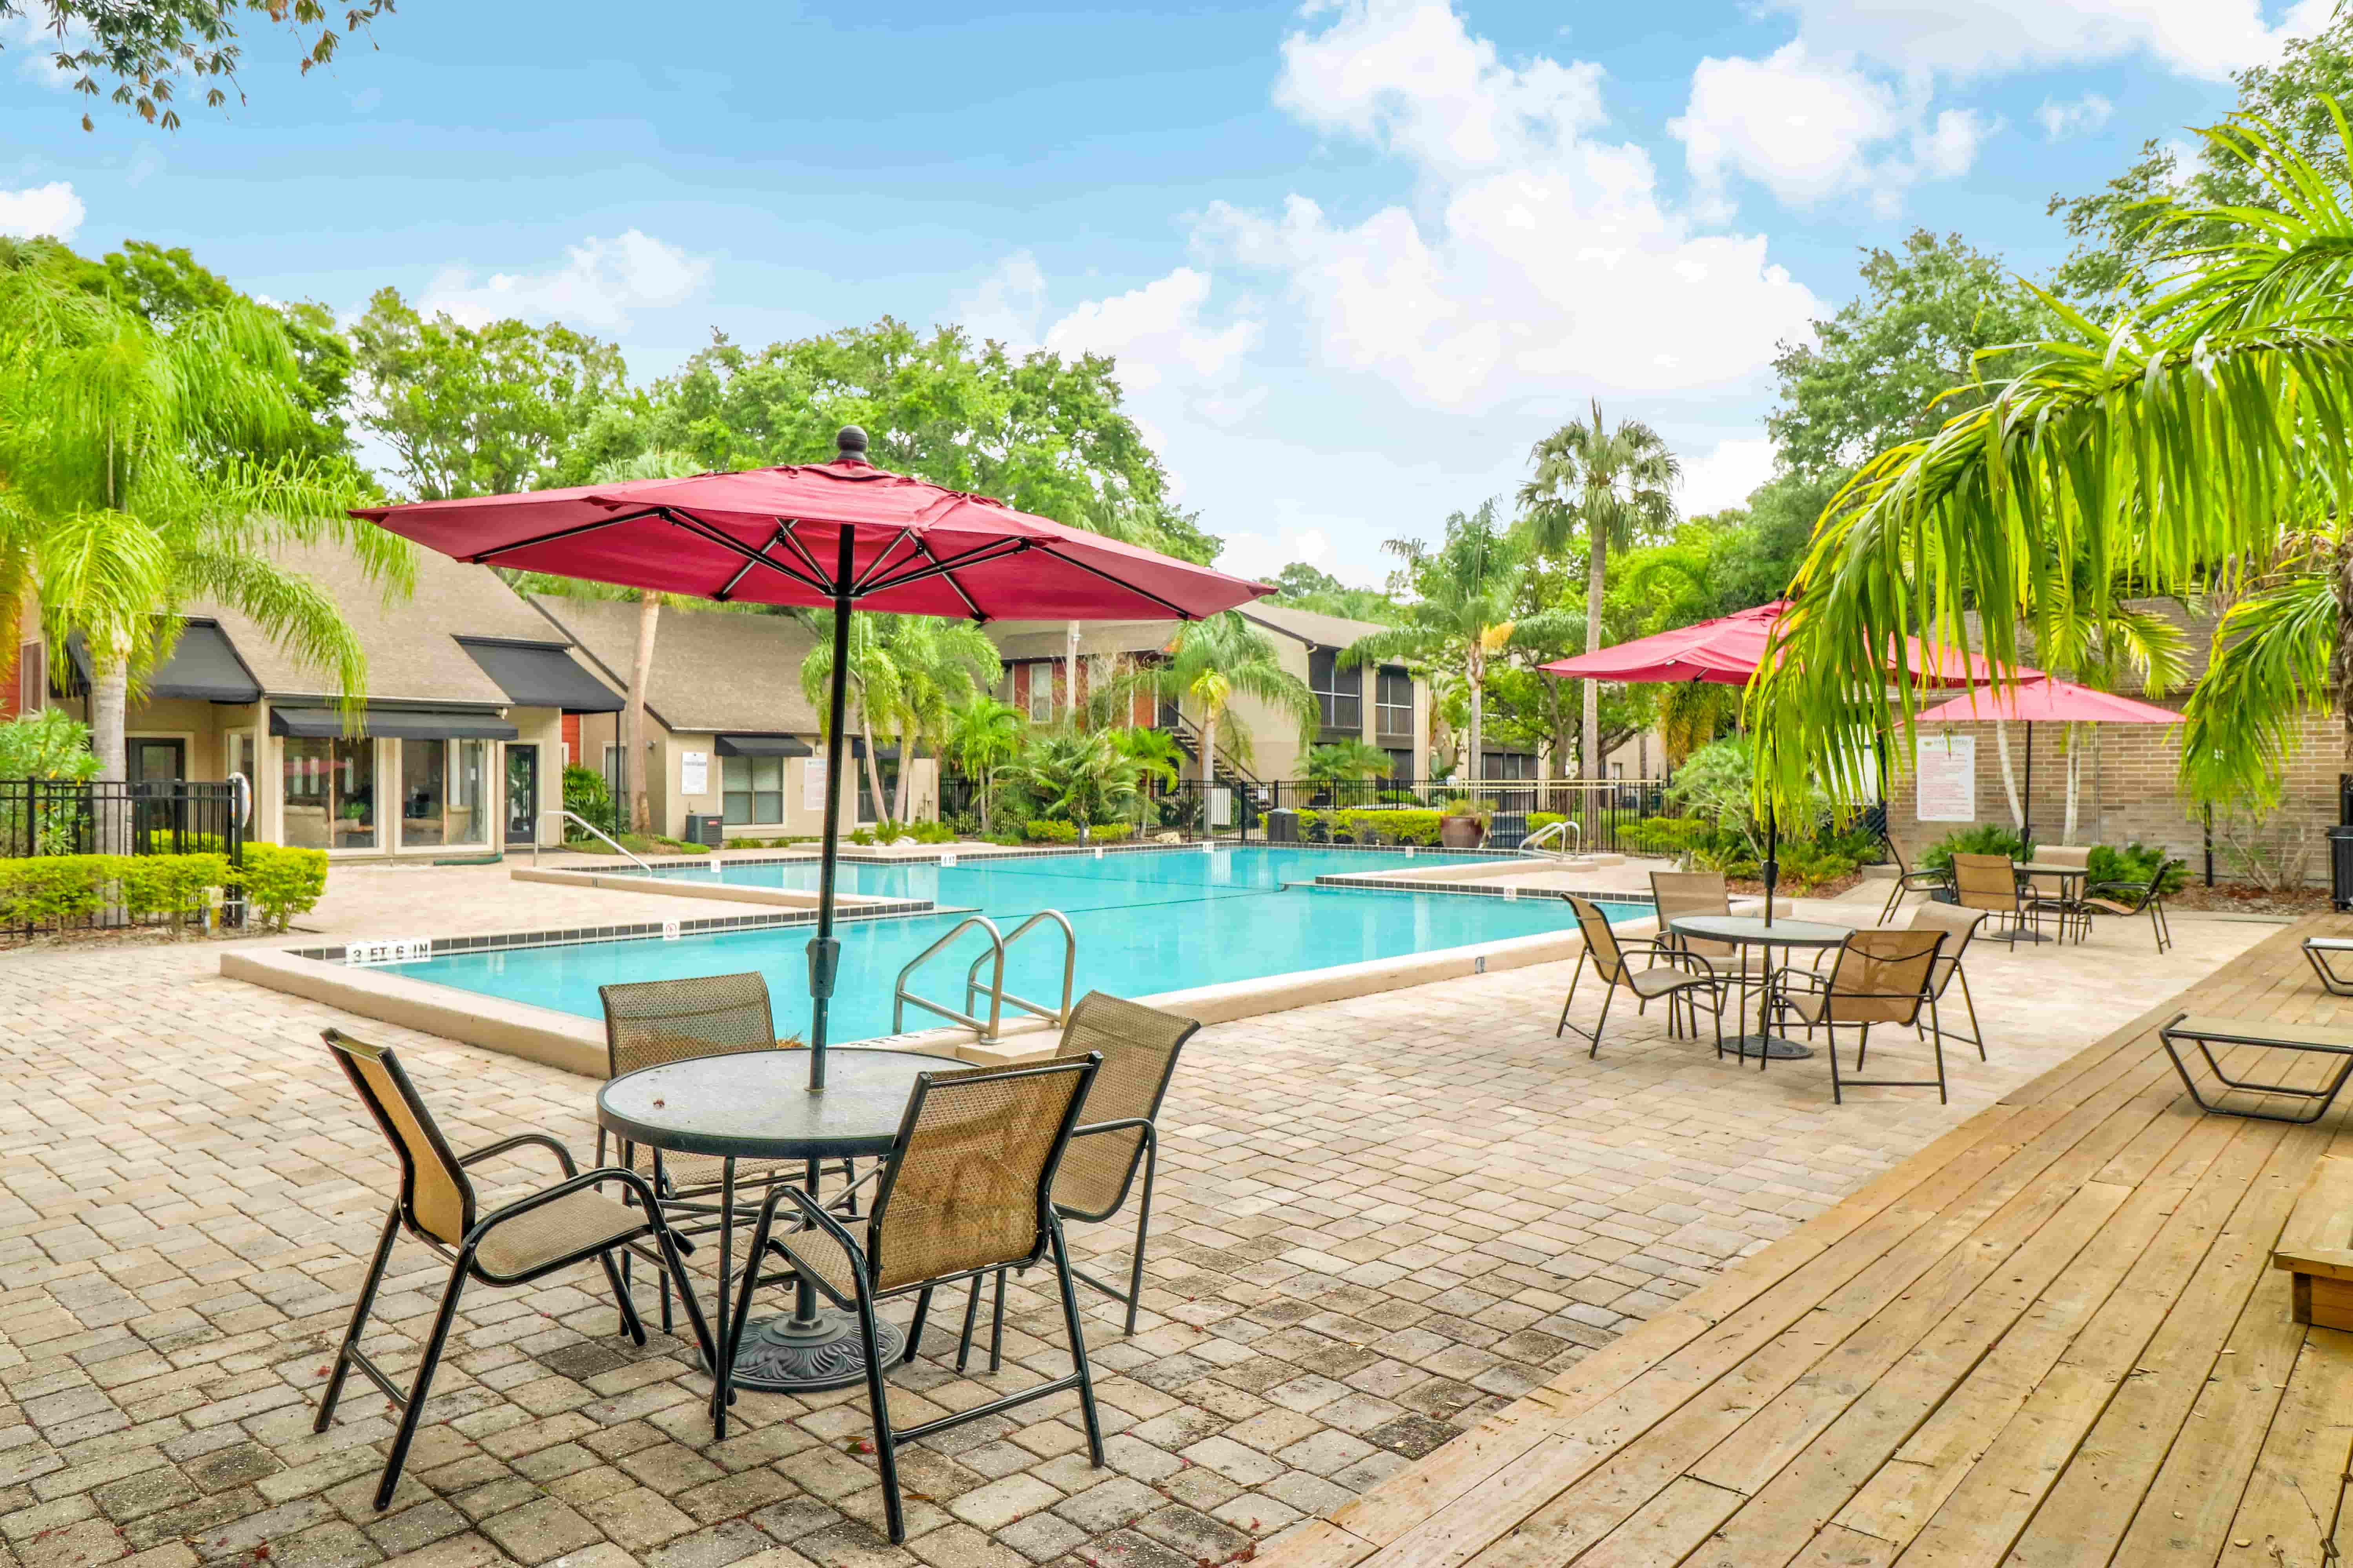 Pool Area at the Baywater Apartments in Tamps, FL